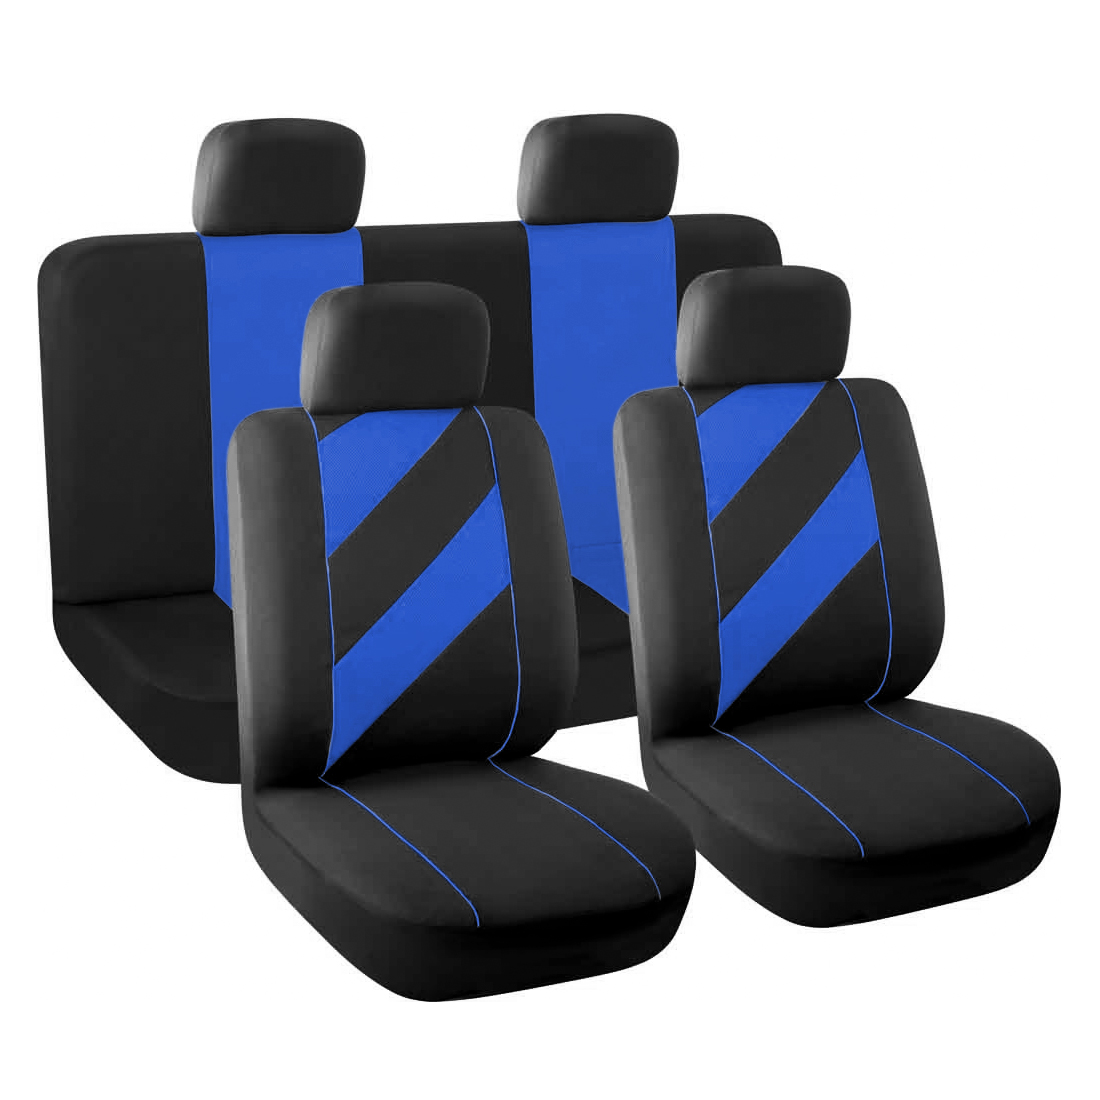 8 Pieces Auto Car Seat Covers with Headrests Full set Gray Black